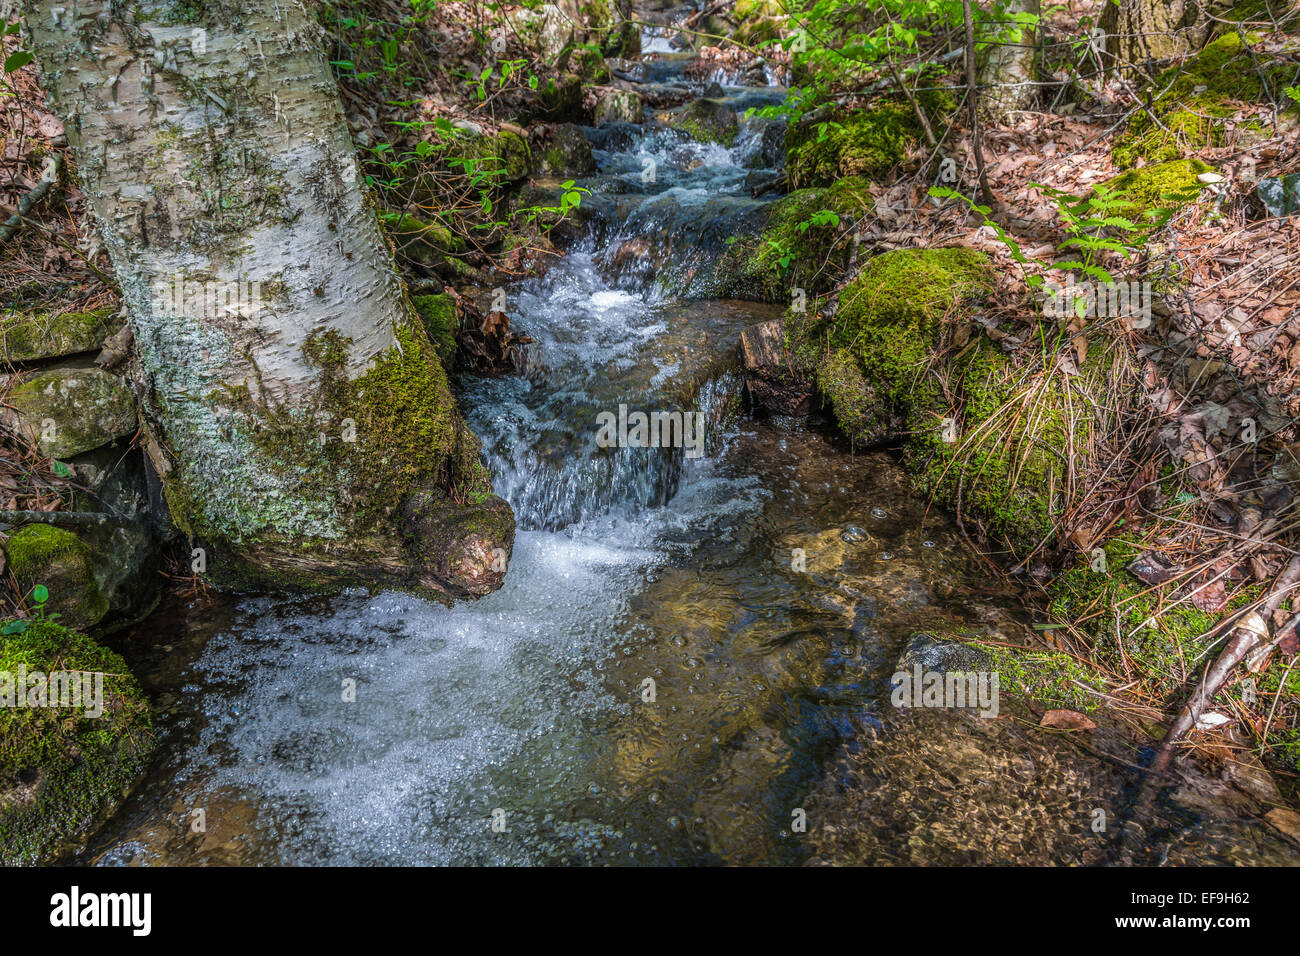 A fast flowing stream from mountain runoff near Sleeping Beauty Mountain in the Adirondacks. - Stock Image